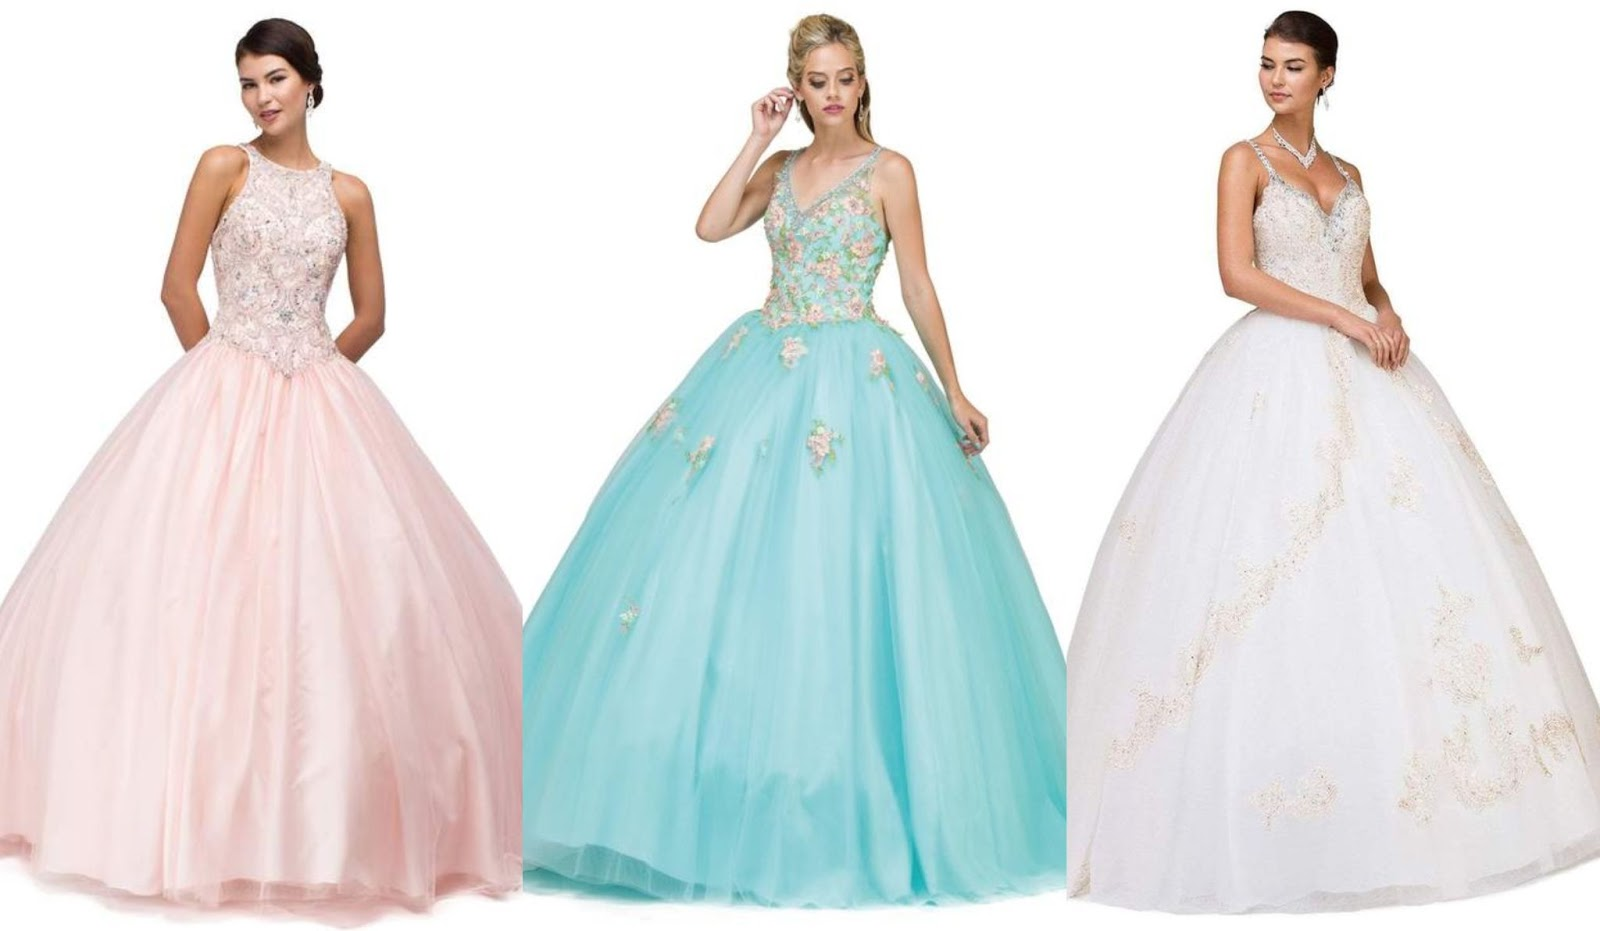 The Best Quinceanera Dresses According To Your Skin Tone